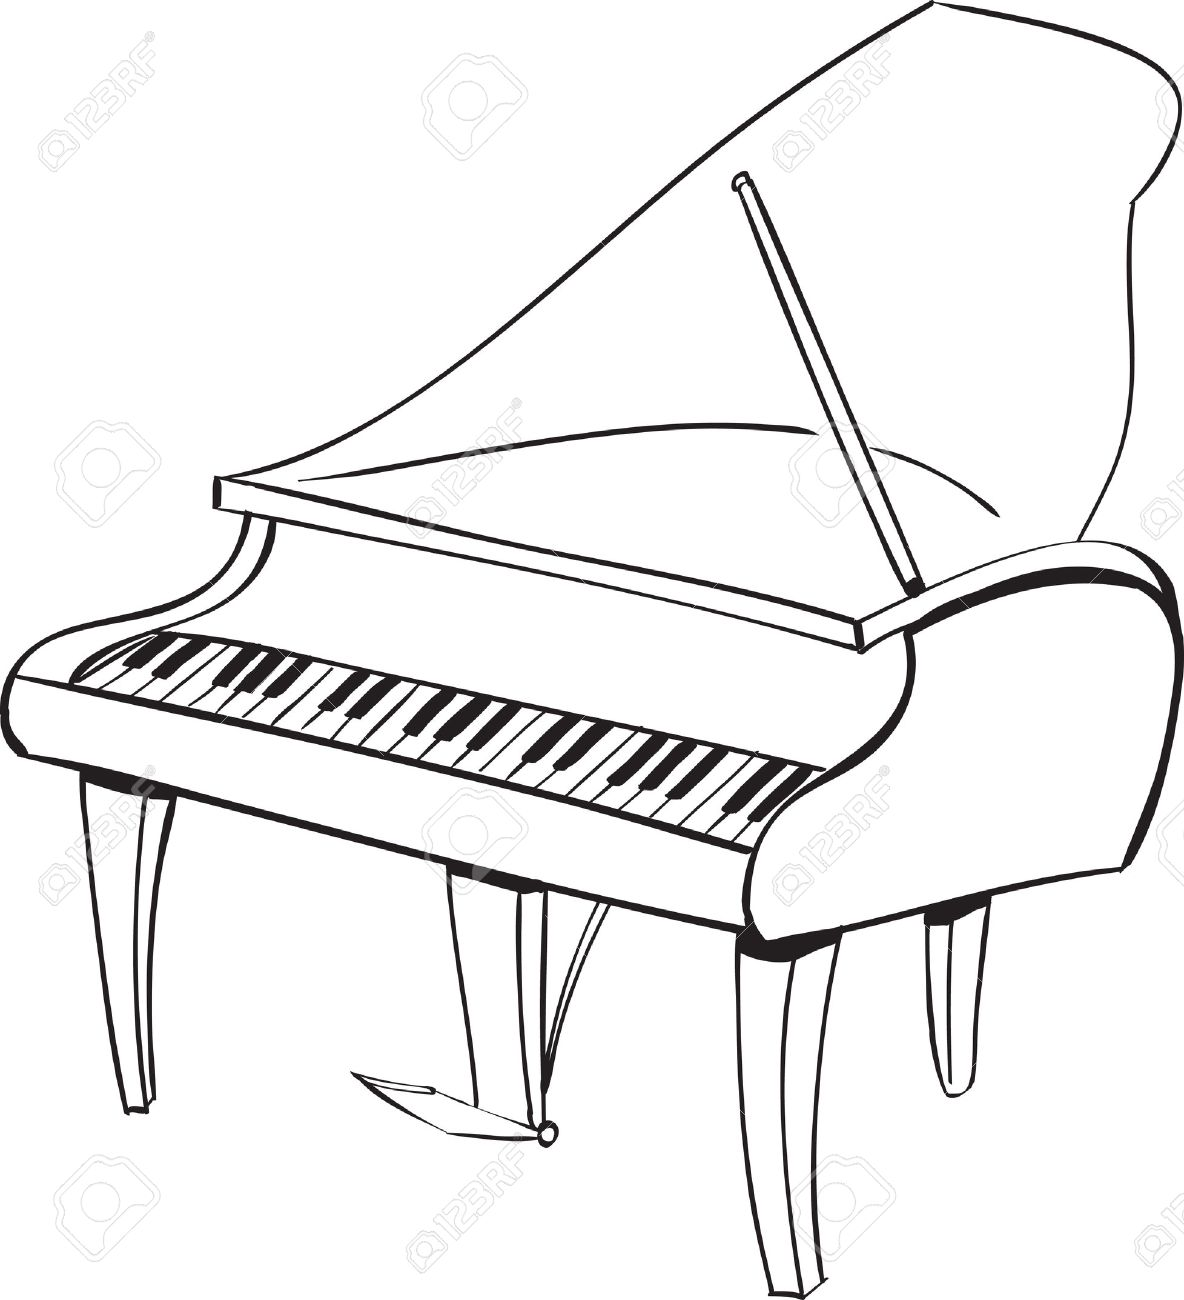 Sketch at paintingvalley com. Piano clipart sketches